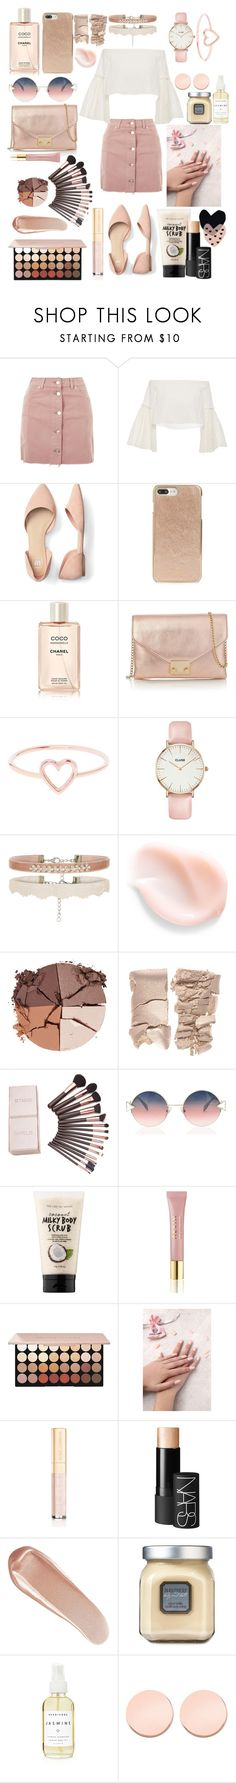 """Bronge"" by diathediamond ❤ liked on Polyvore featuring Topshop, Rosetta Getty, Kate Spade, Loeffler Randall, Love Is, CLUSE, lilah b., Fendi, Sephora Collection and AERIN"